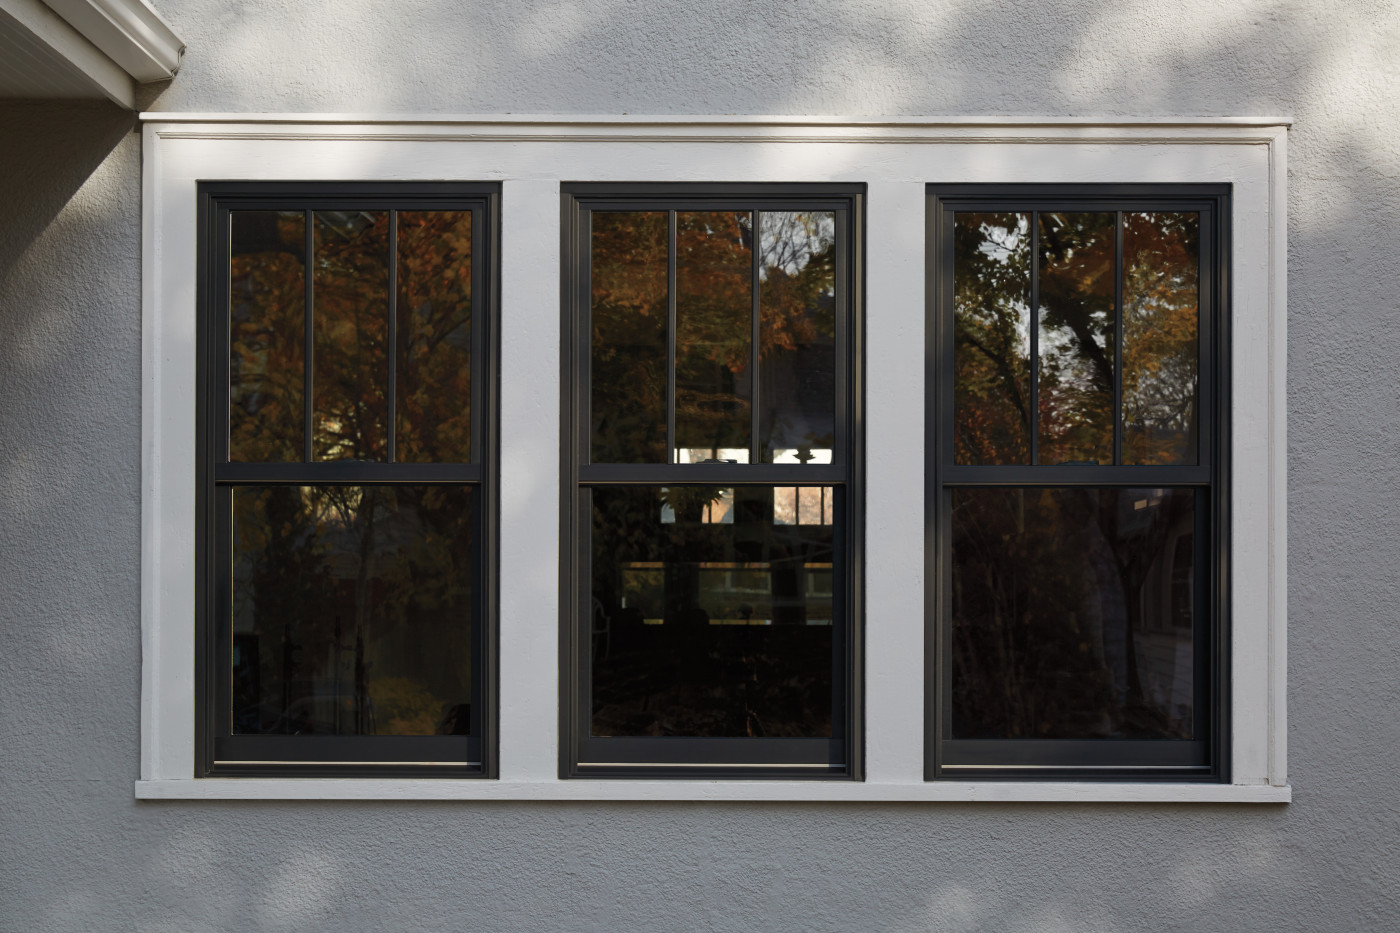 black exterior now available on andersen 400 series windows and 200 series patio doors kuiken brothers locations in nj ny kuiken brothers